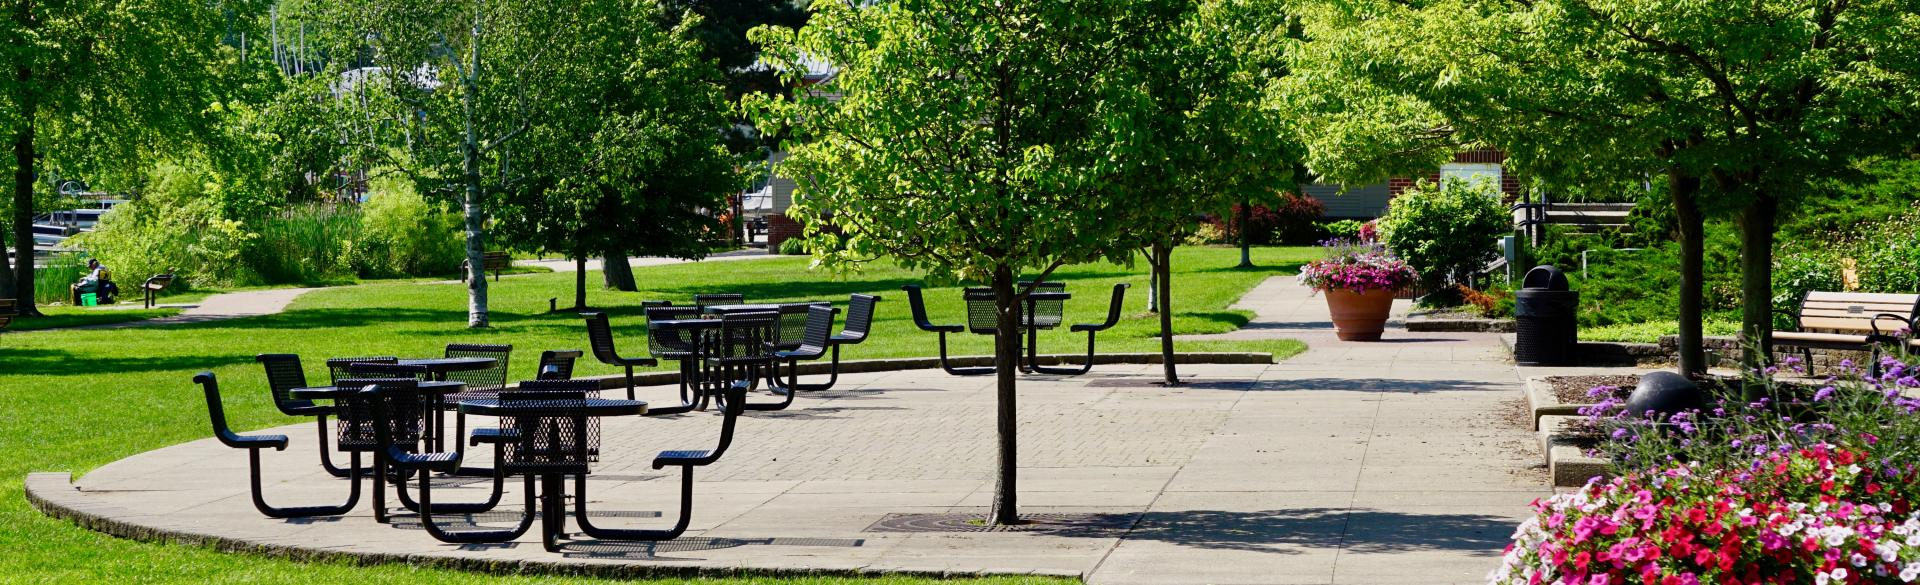 John Collins Park offers access to the paved Reeds Lake Trail, as well as accessible restrooms and ramps.